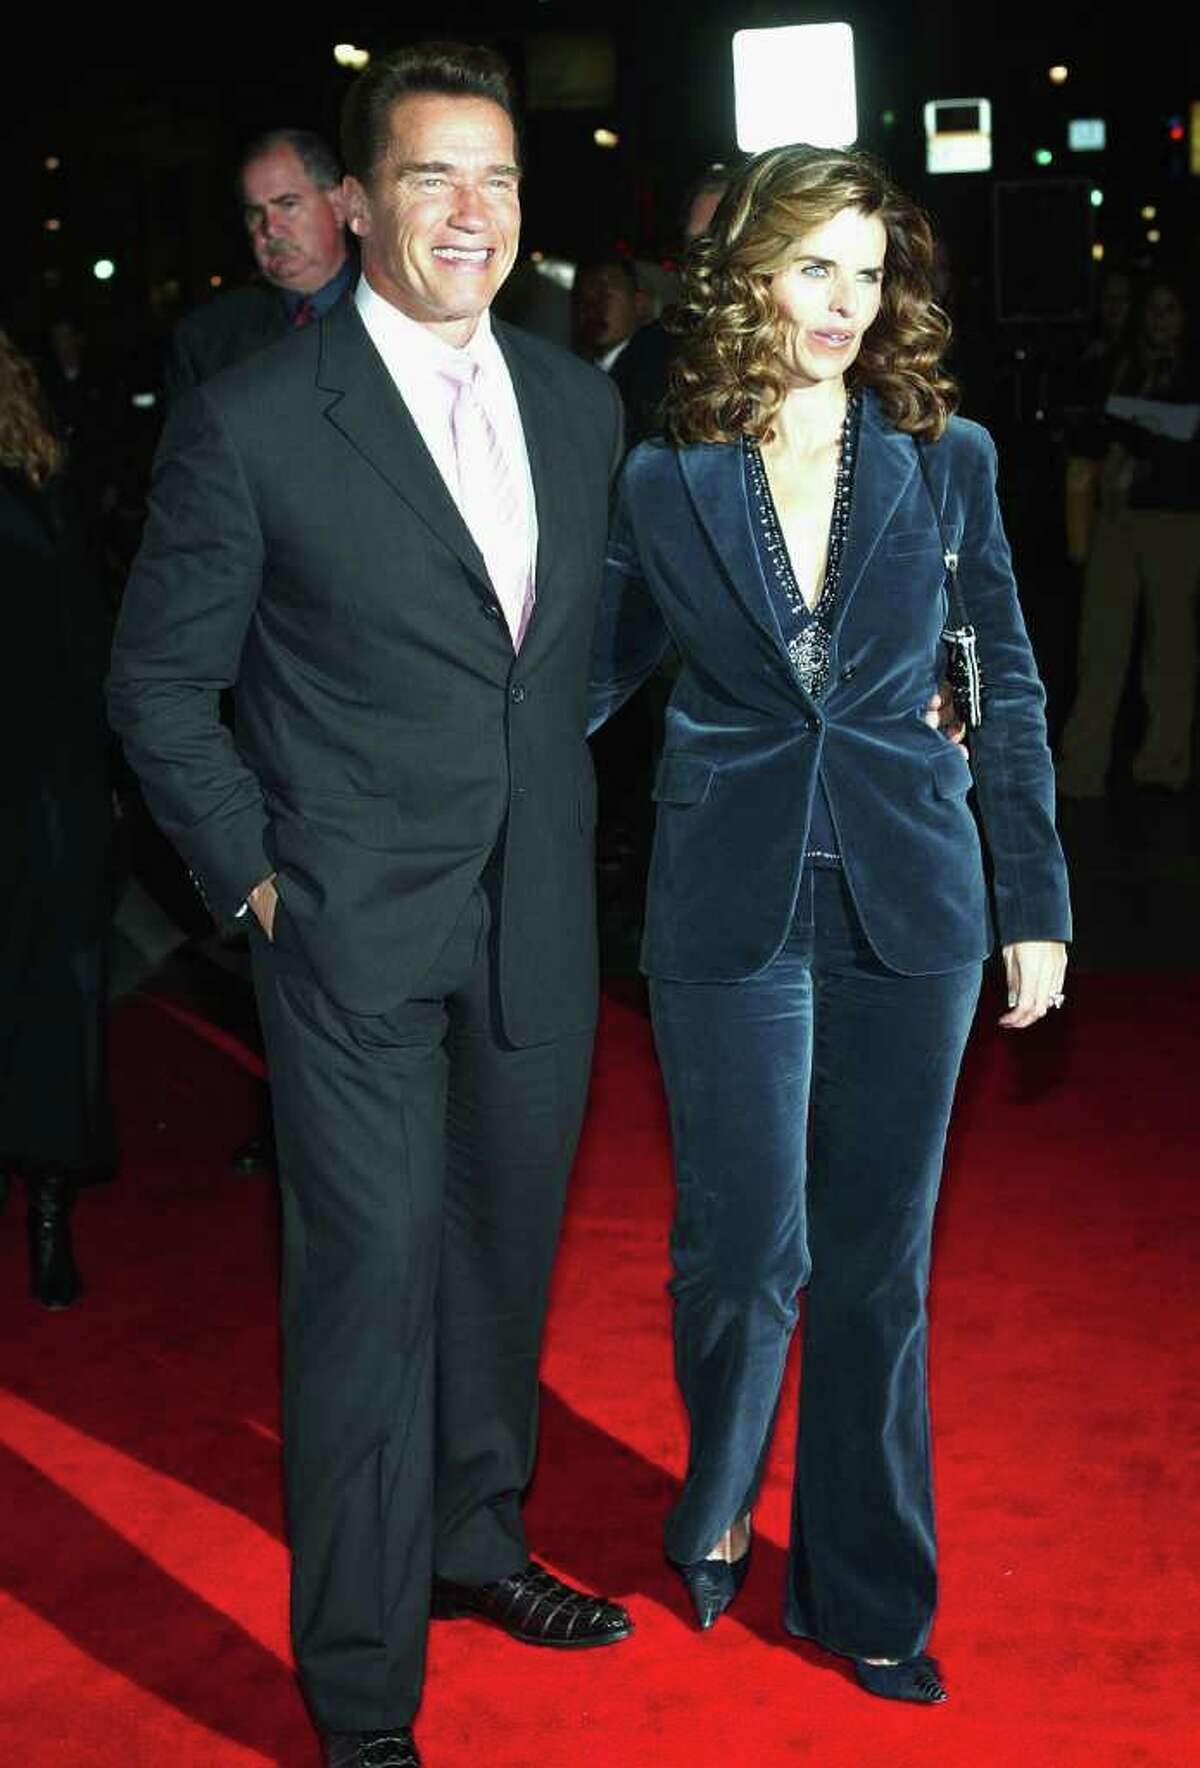 HOLLYWOOD - NOVEMBER 28: (L-R) Governor Arnold Schwarzenegger and Maria Shriver attend the film premiere of